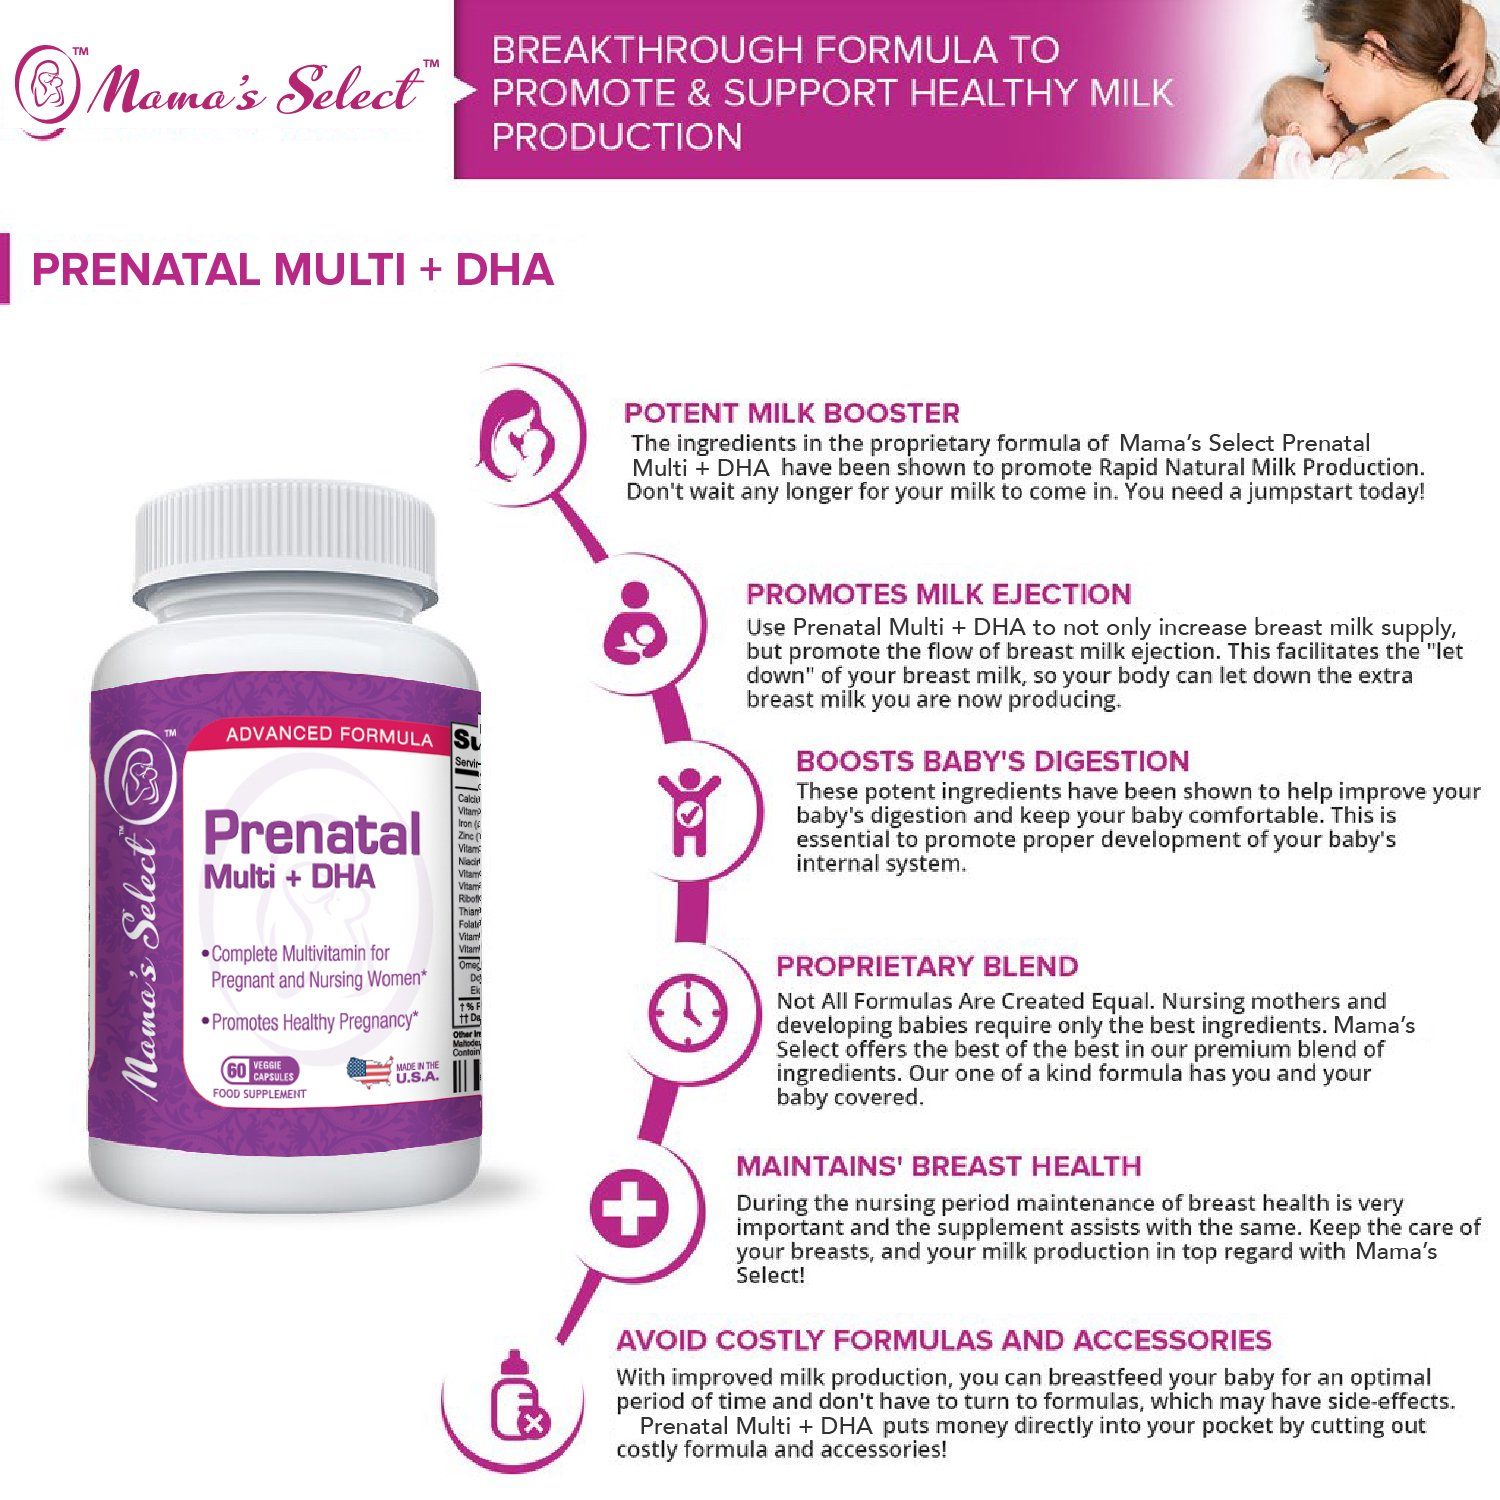 Prenatal & Postnatal Multivitamin With DHA - Mama's Select Lactose Free  Vitamins - Dairy Free & Gluten Free - Omega 3 Fatty Acids, Methyl Folate,  Beta